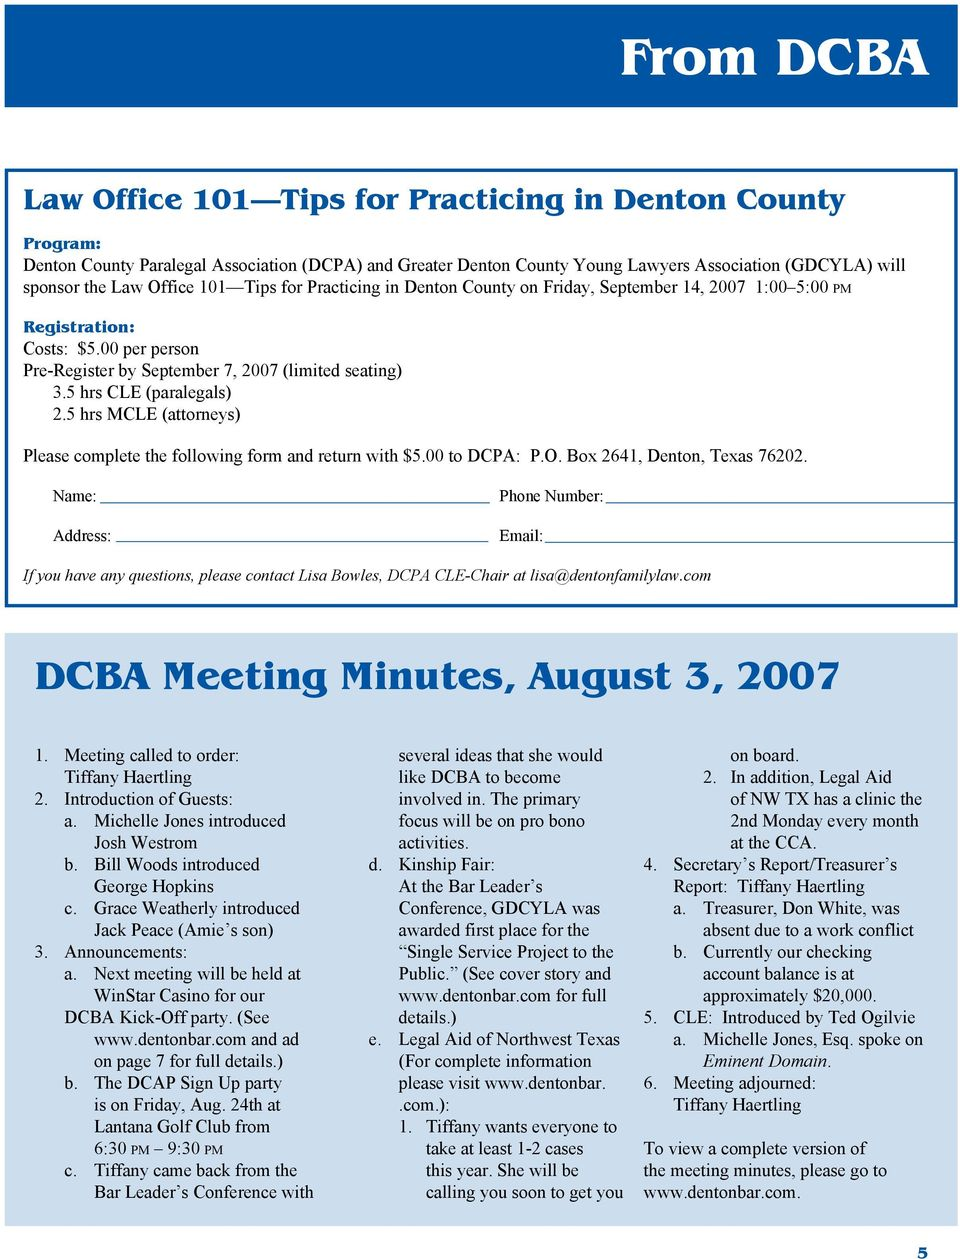 5 hrs CLE (paralegals) 2.5 hrs MCLE (attorneys) Please complete the following form and return with $5.00 to DCPA: P.O. Box 2641, Denton, Texas 76202.